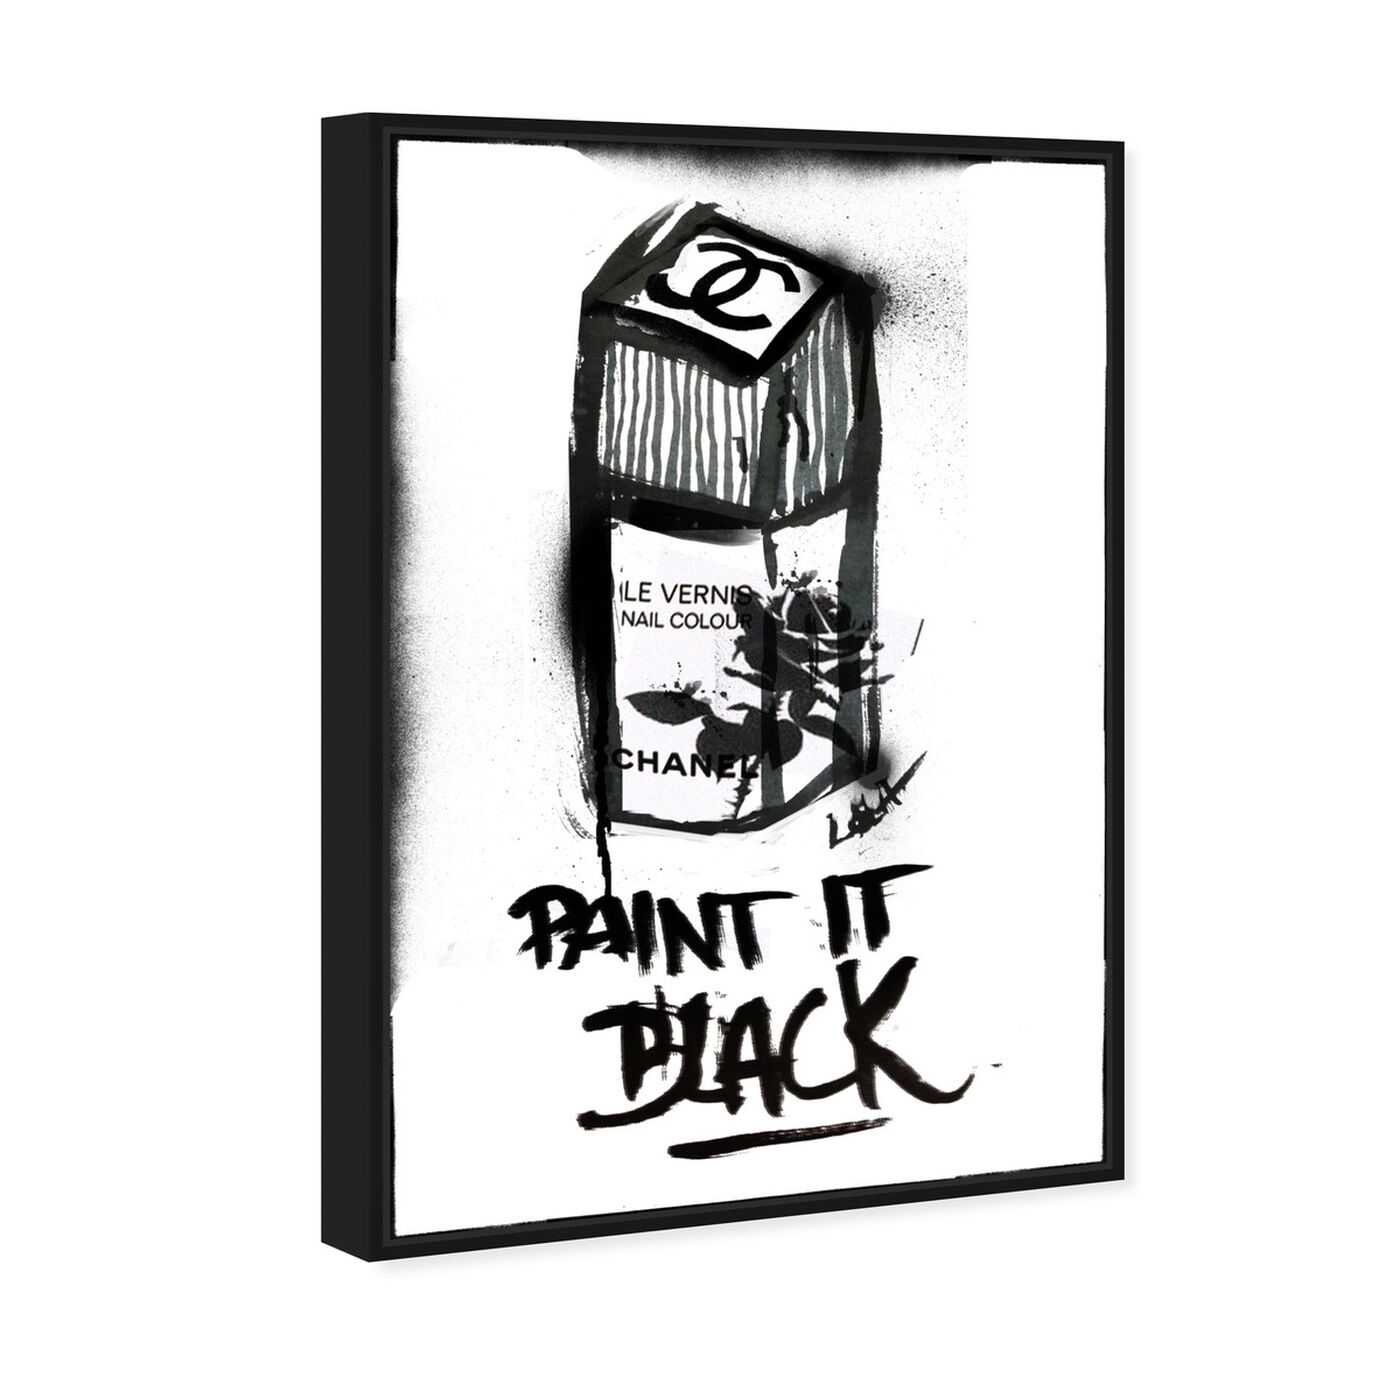 Angled view of Paint it Black featuring fashion and glam and nail polish art.